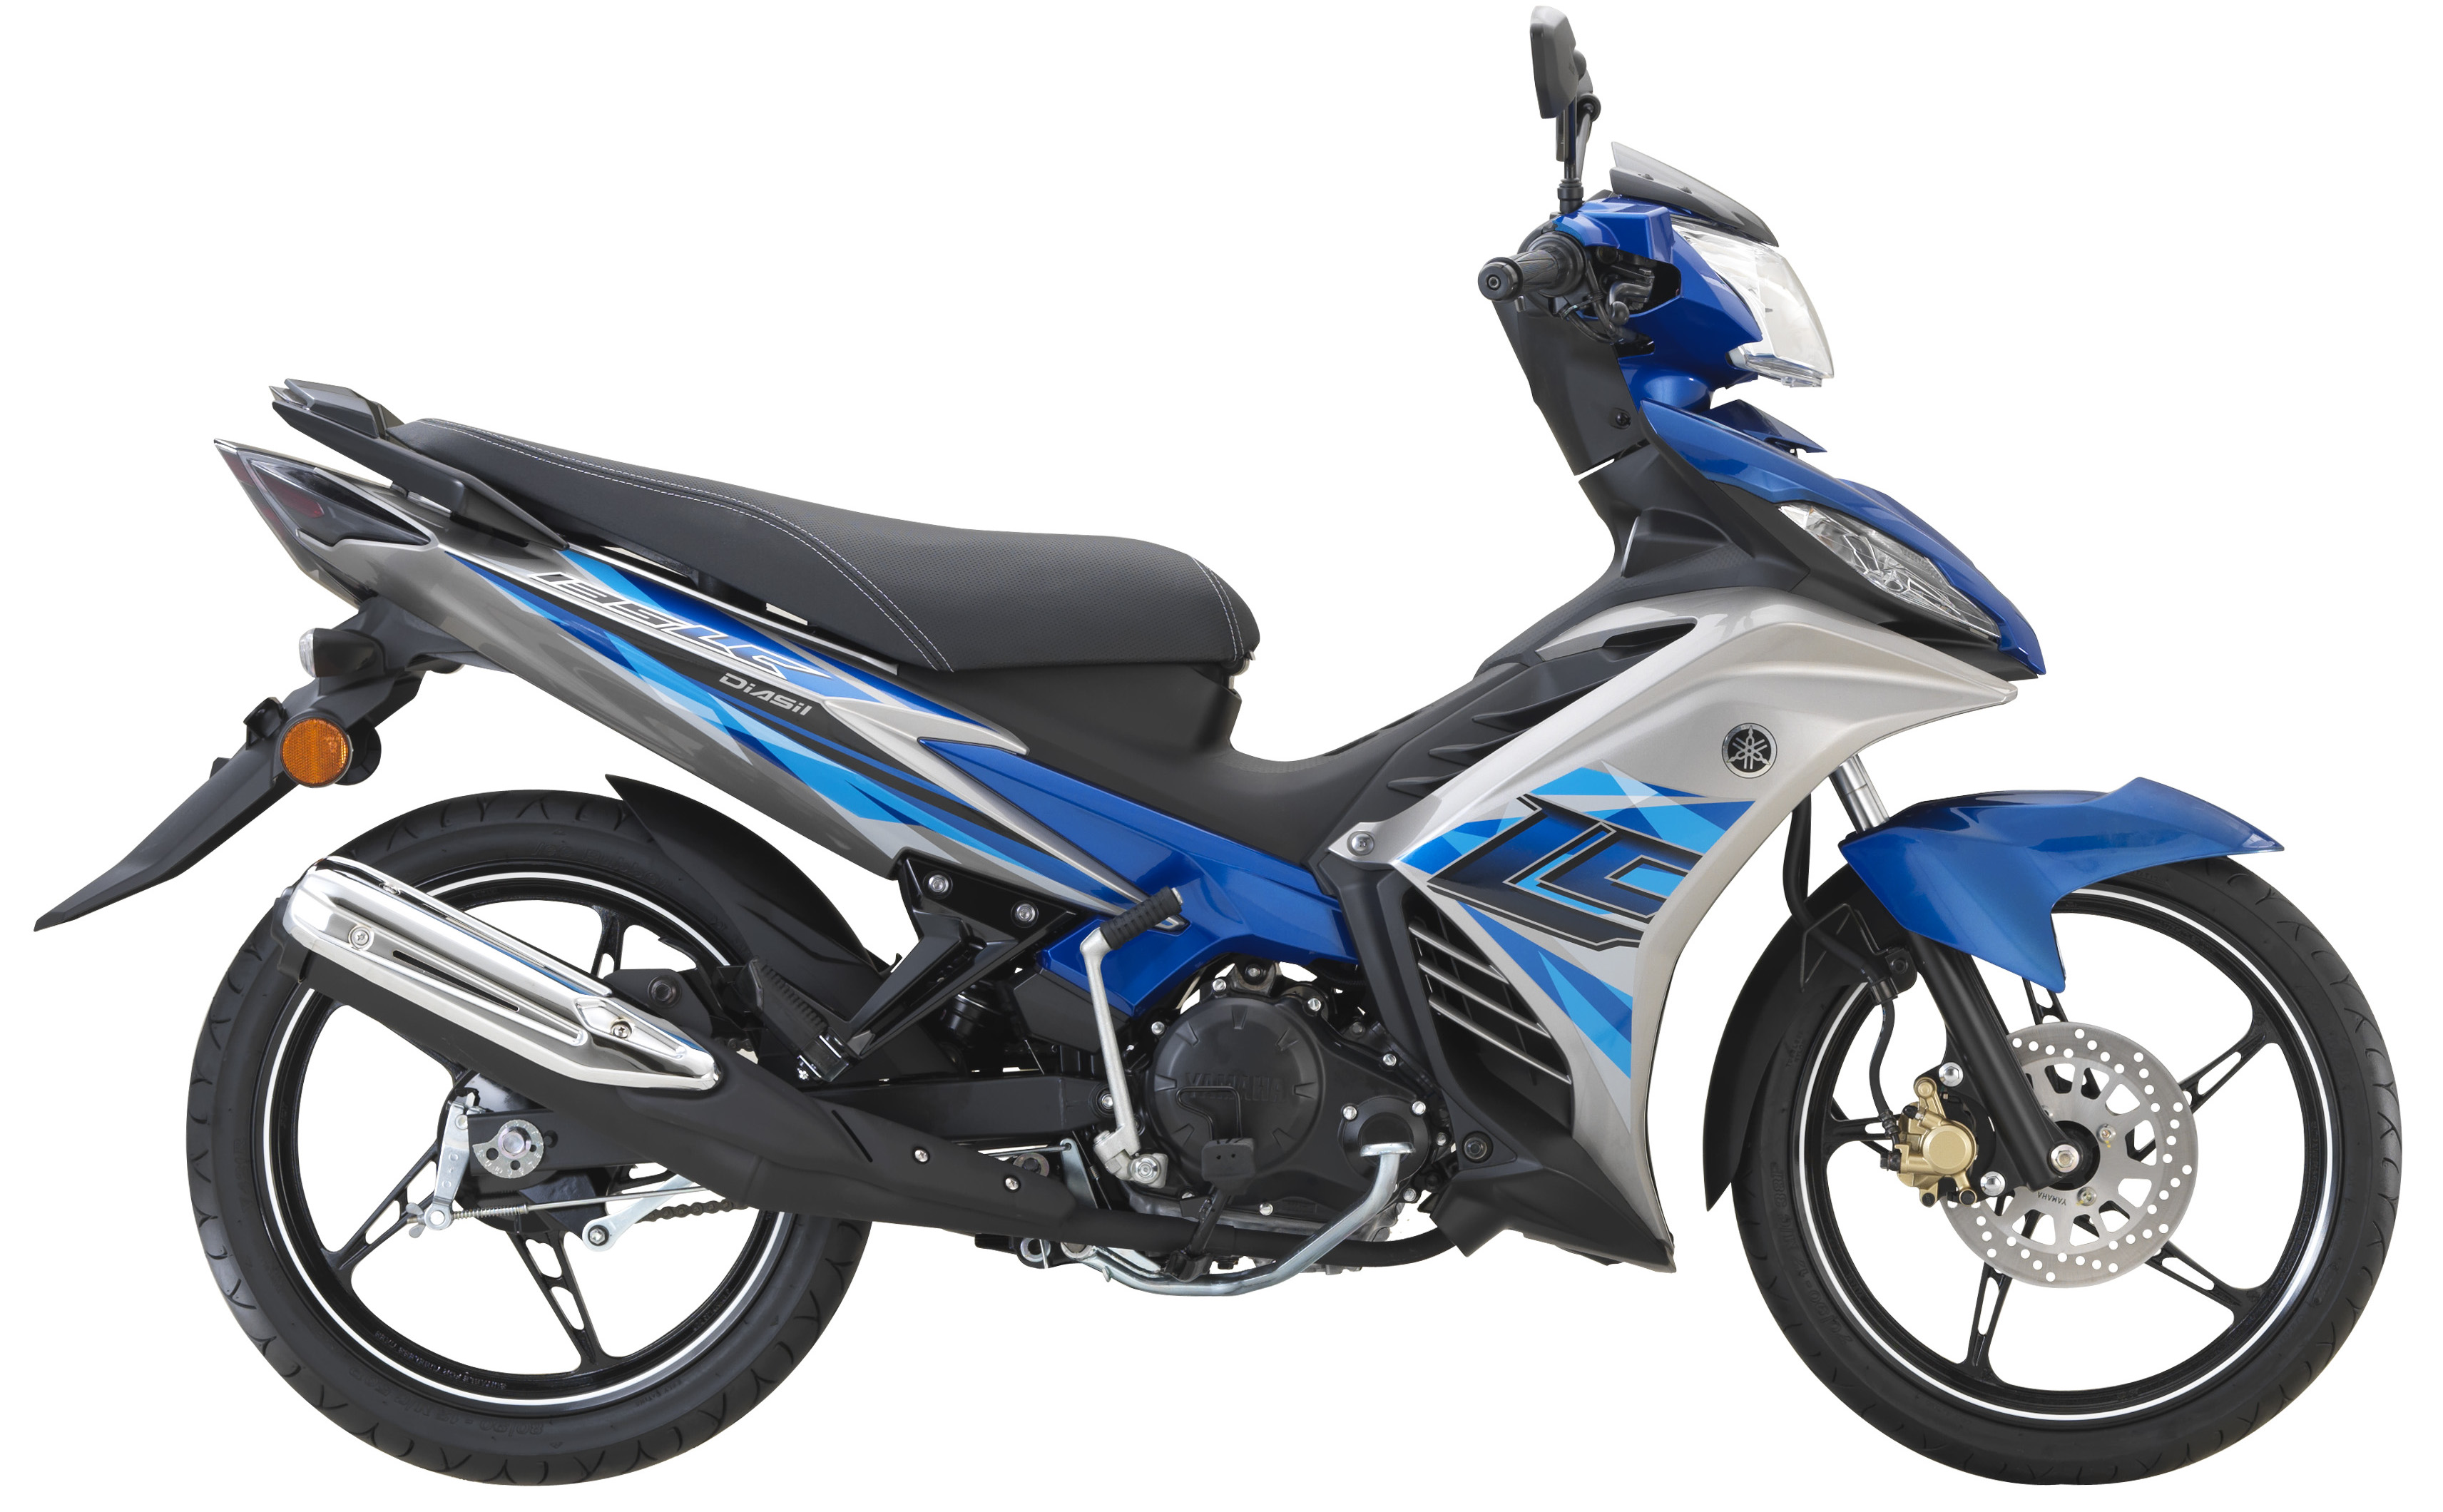 2017 yamaha y135lc in new colours rm7 167 image 693756